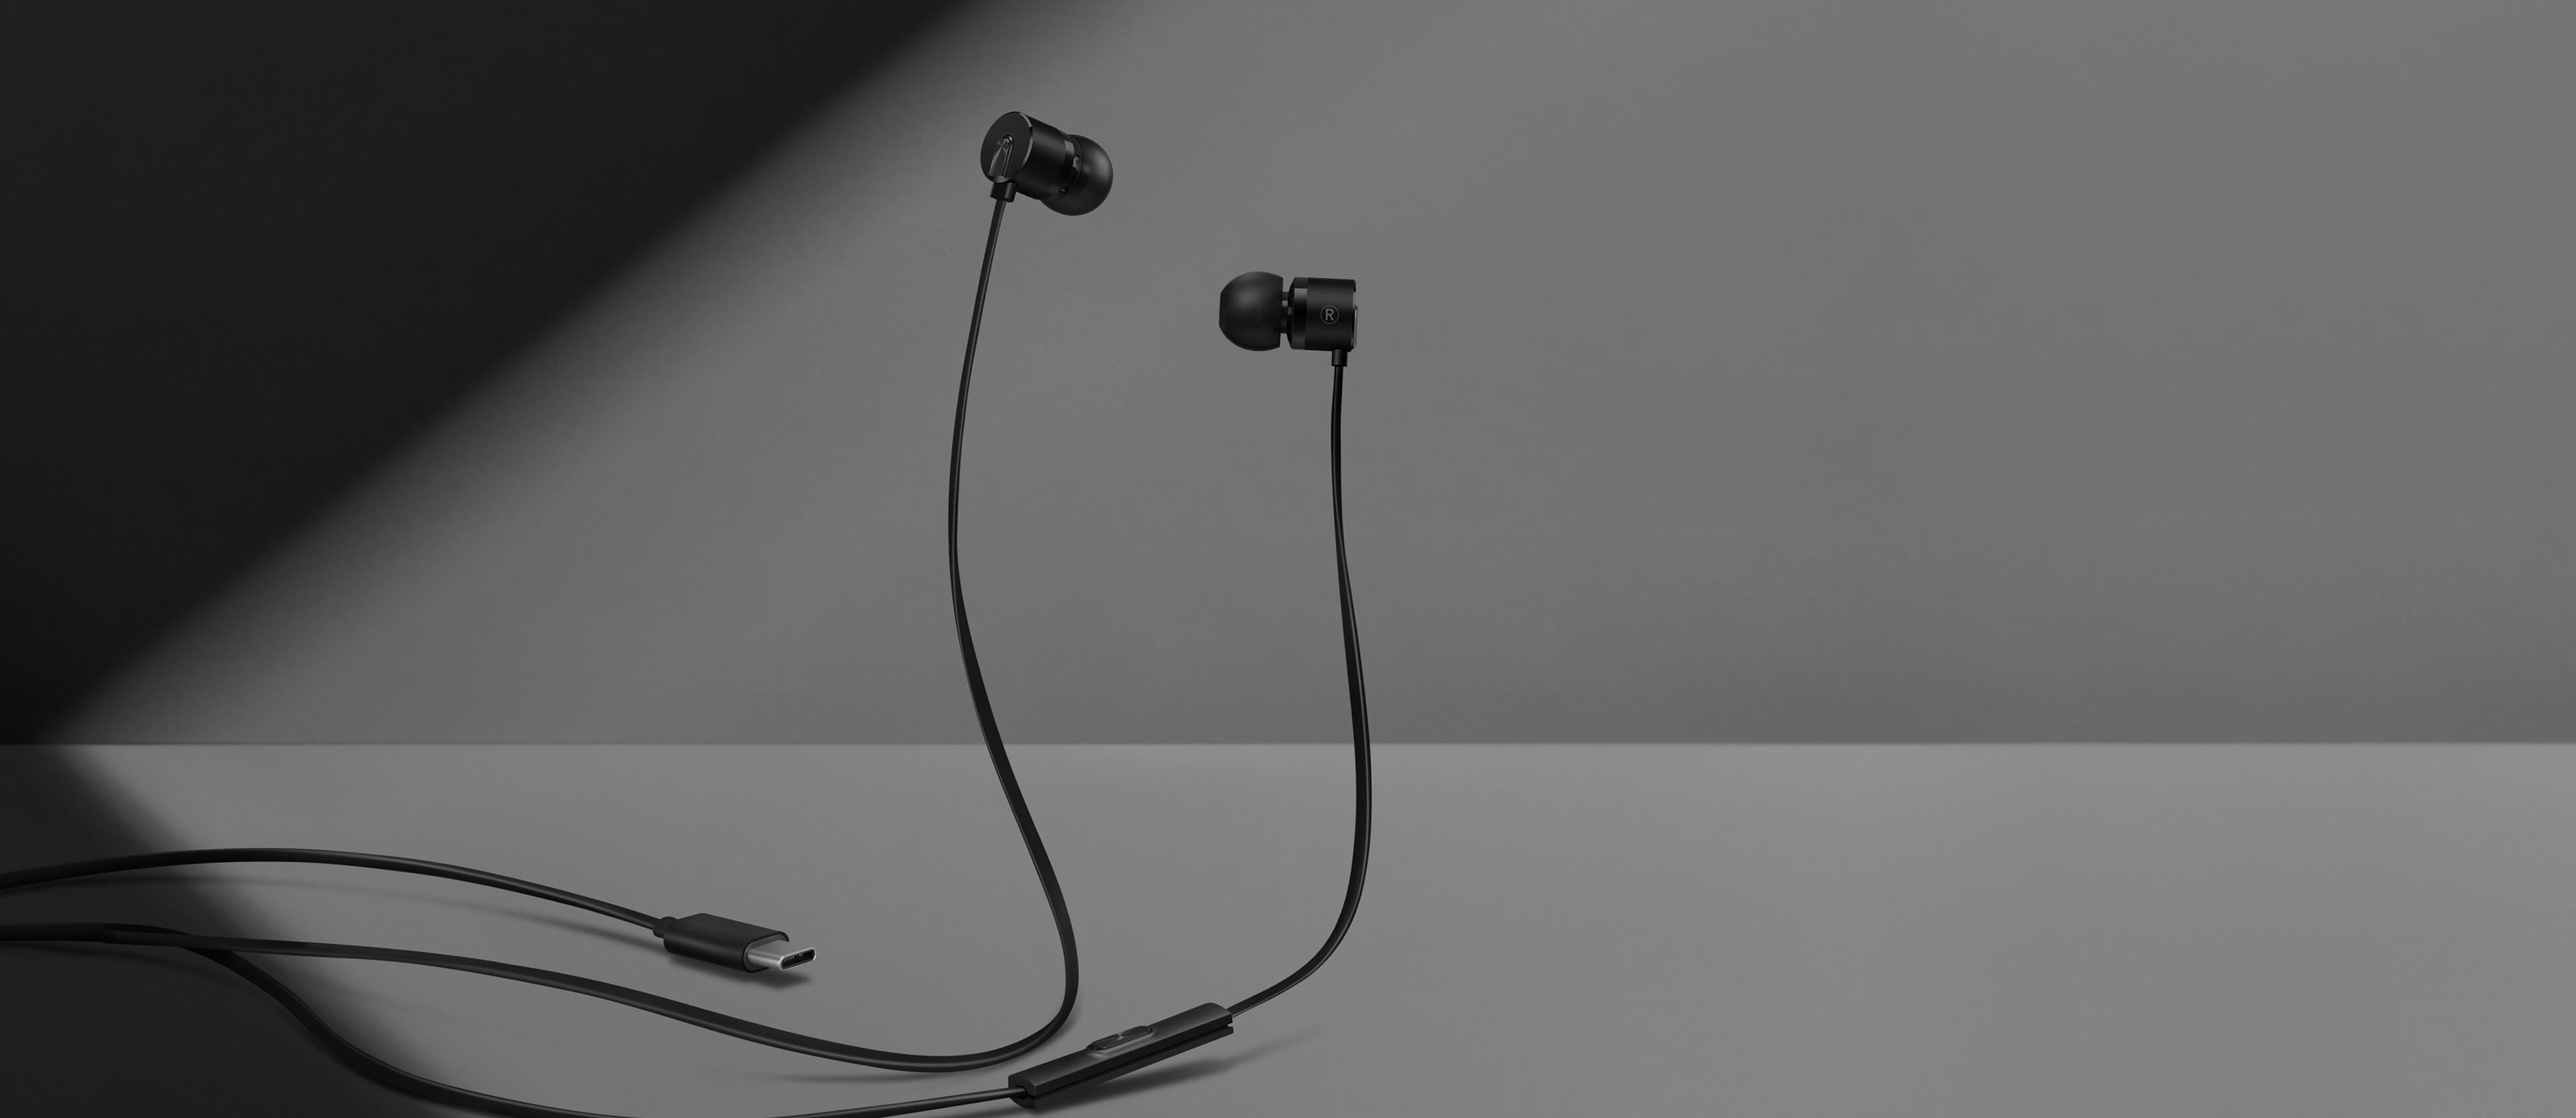 ONEPLUS TYPE C EARPHONES BANNER - Better Audio with a Built-in DAC